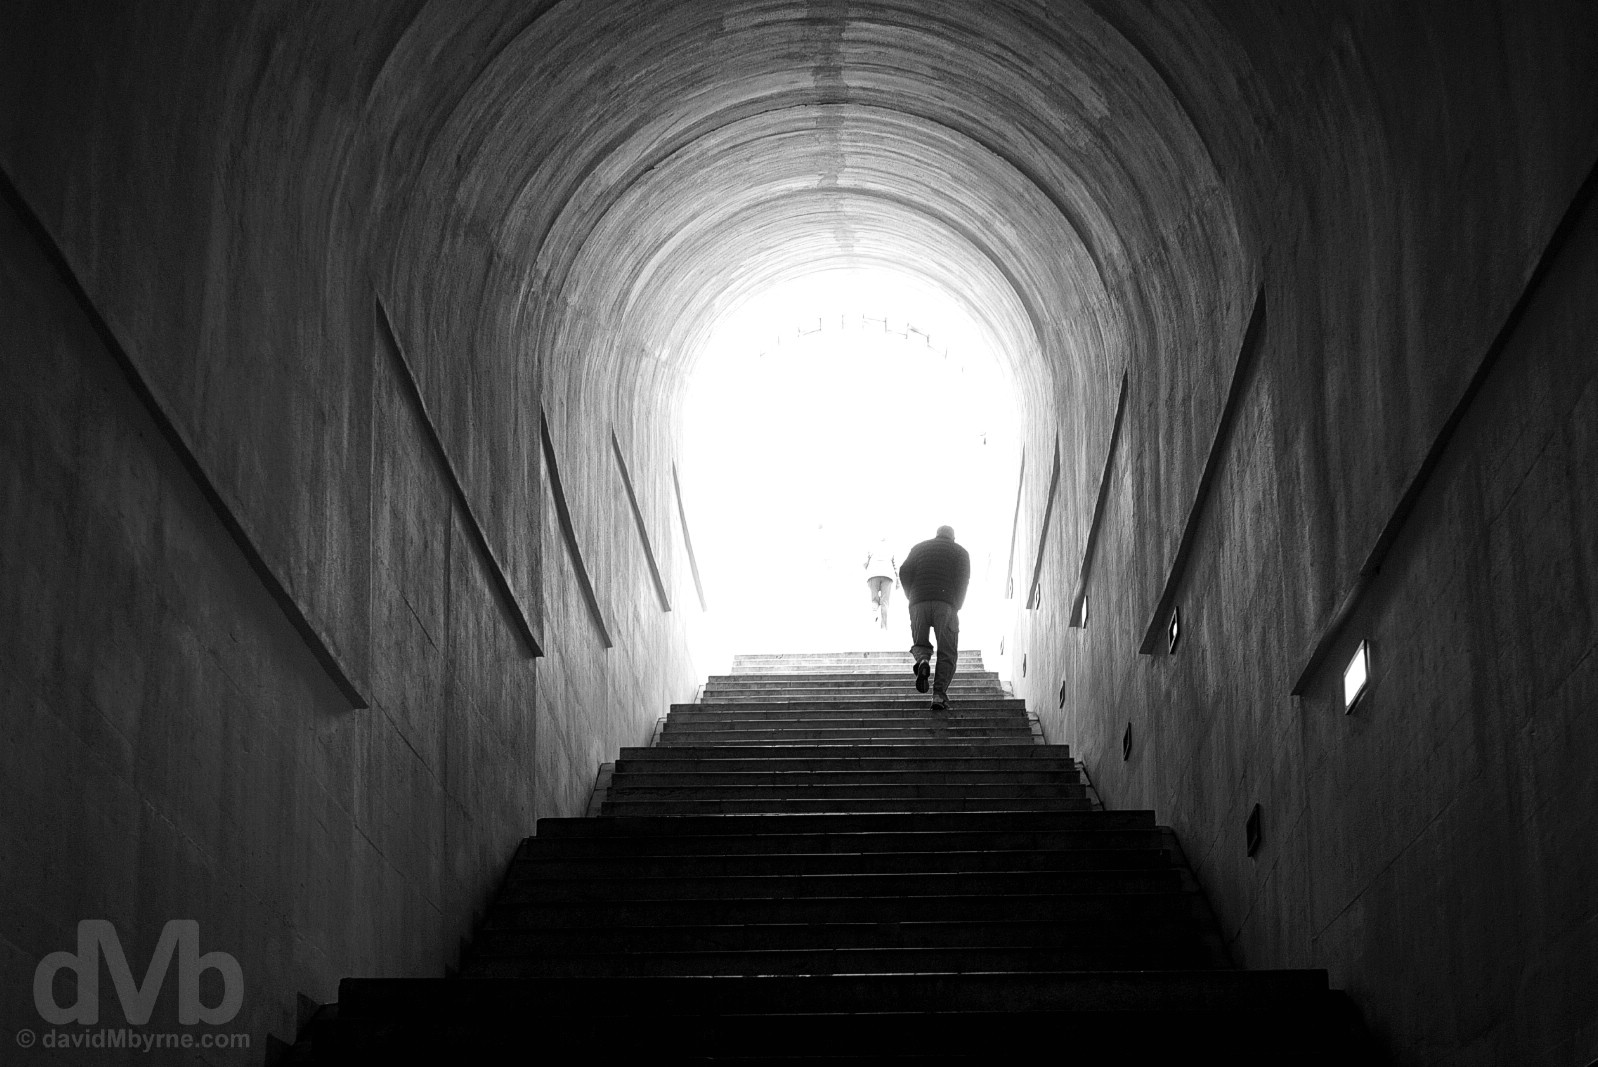 Towards the light. Tackling the 461 steps to Njegos Mausoleum, the world's highest, in Lovcen National Park, Montenegro. April 20, 2017.